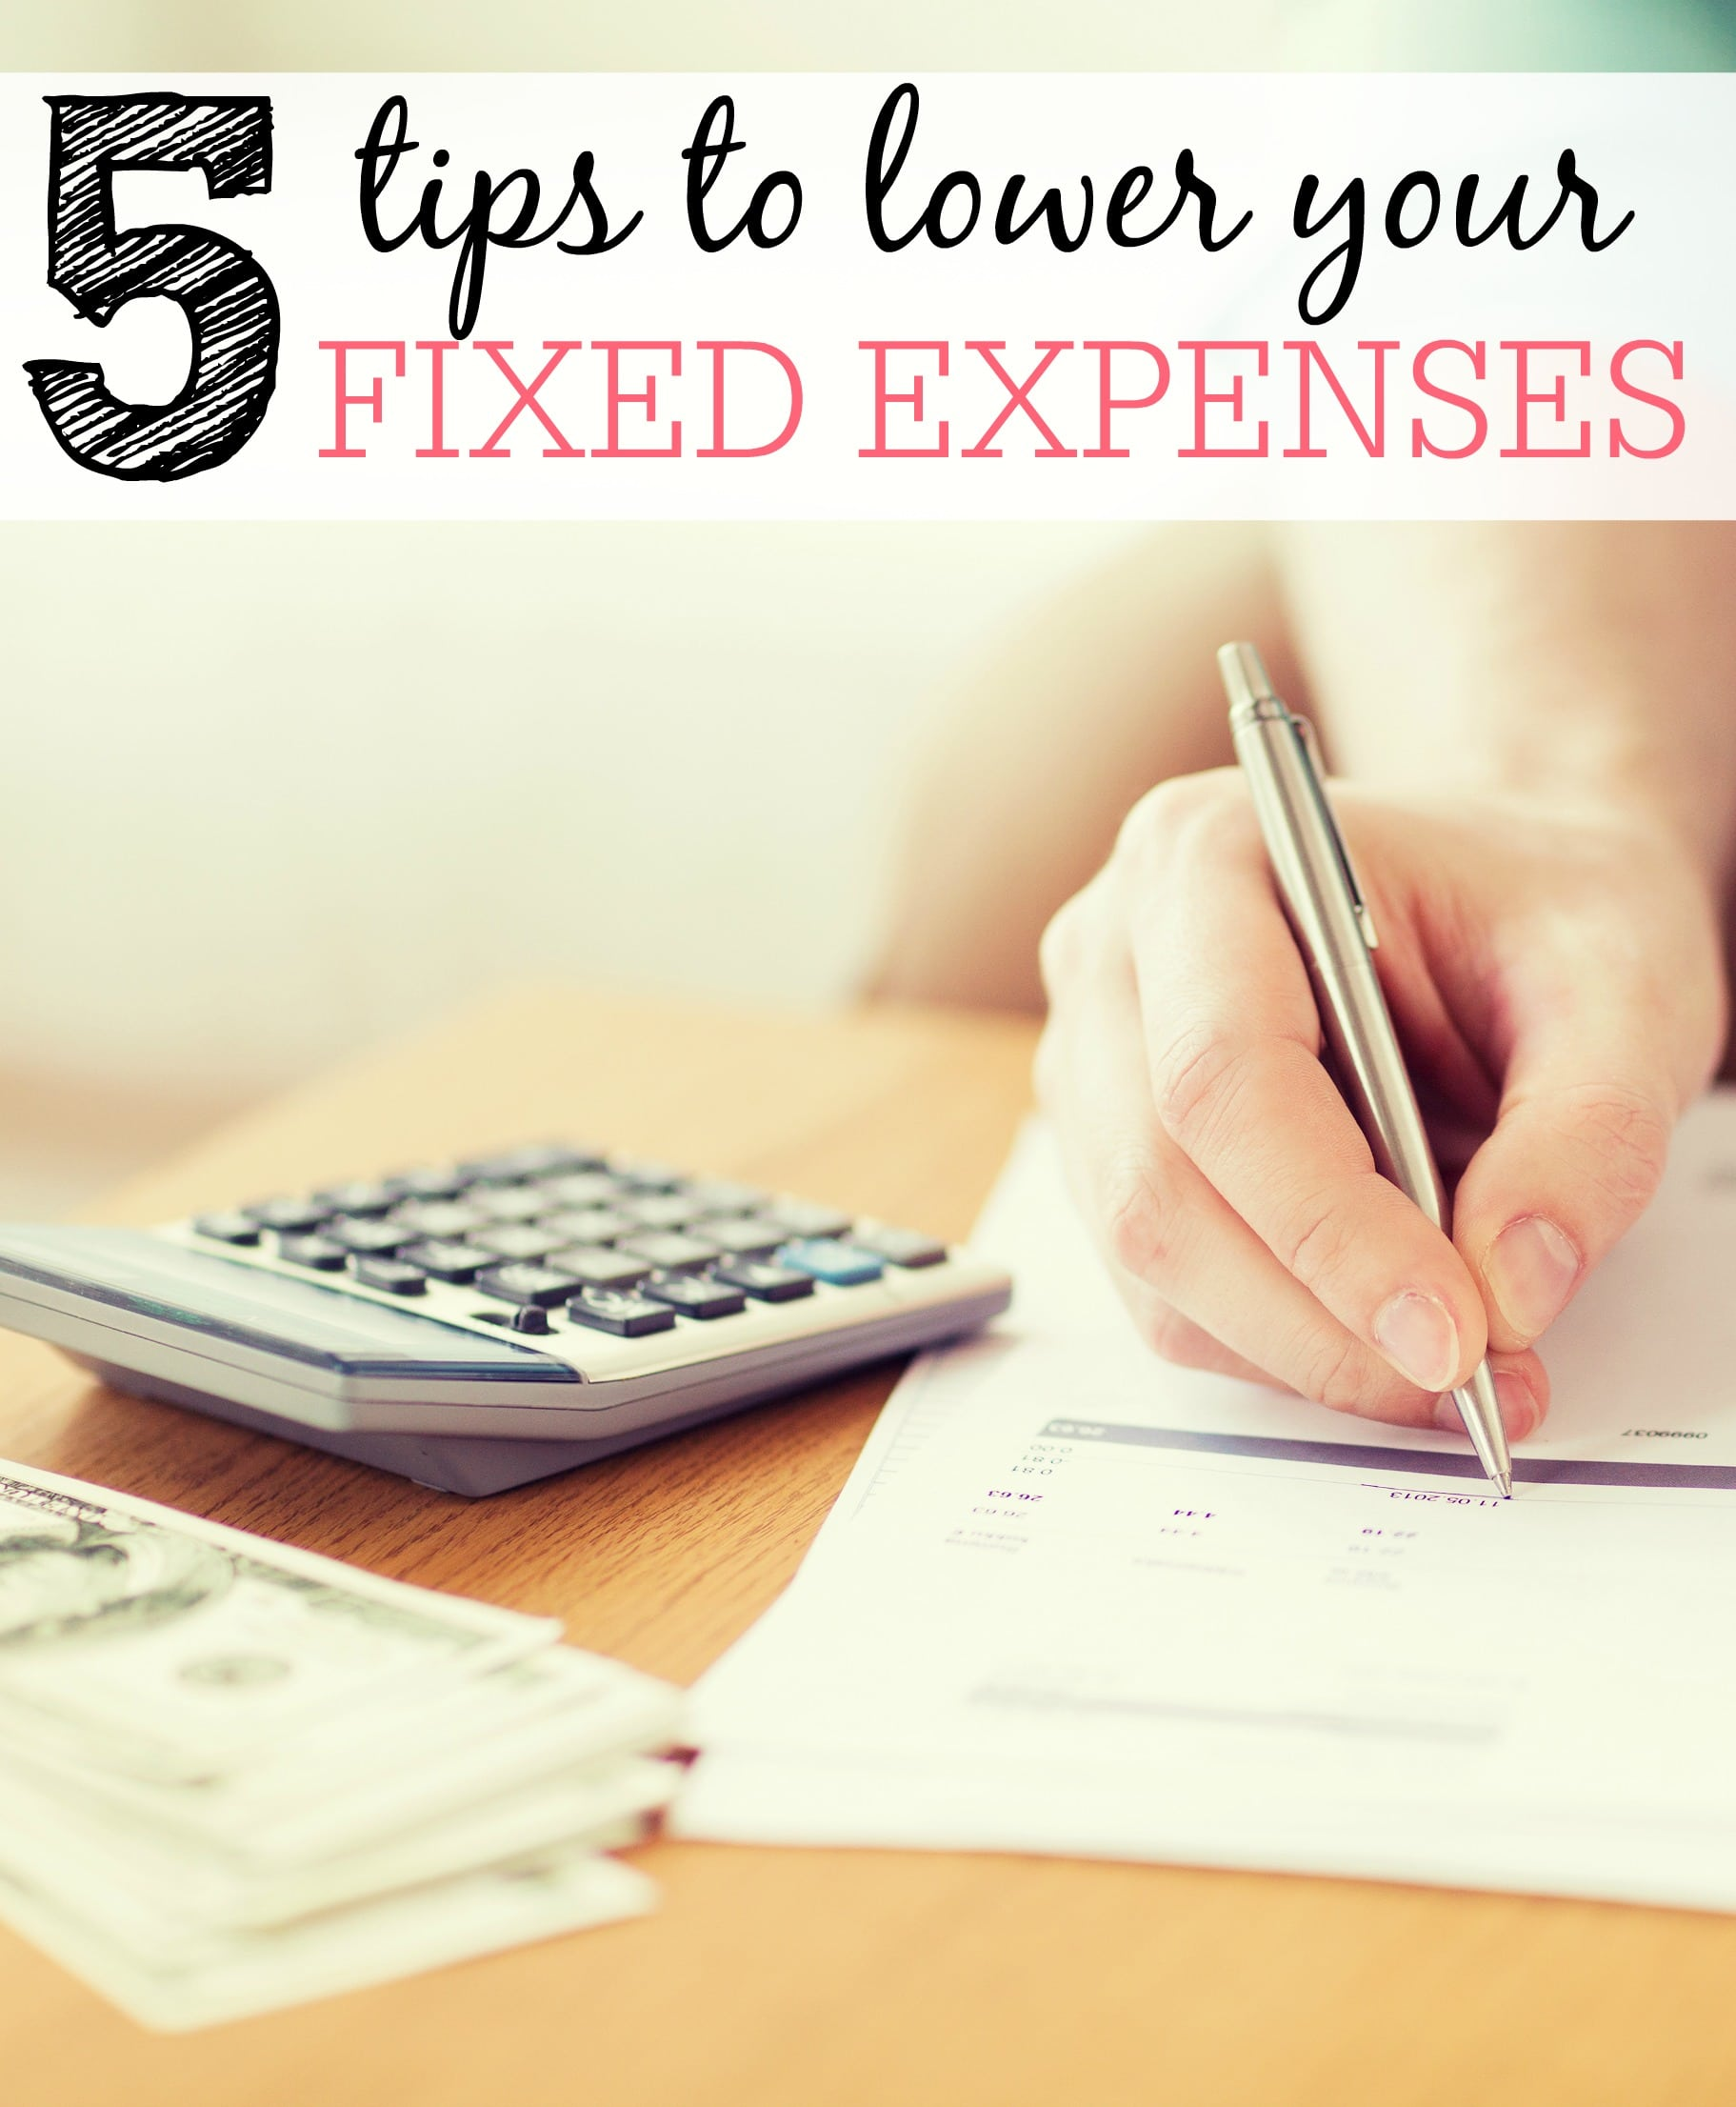 5 Tips to Lower Your Fixed Expenses